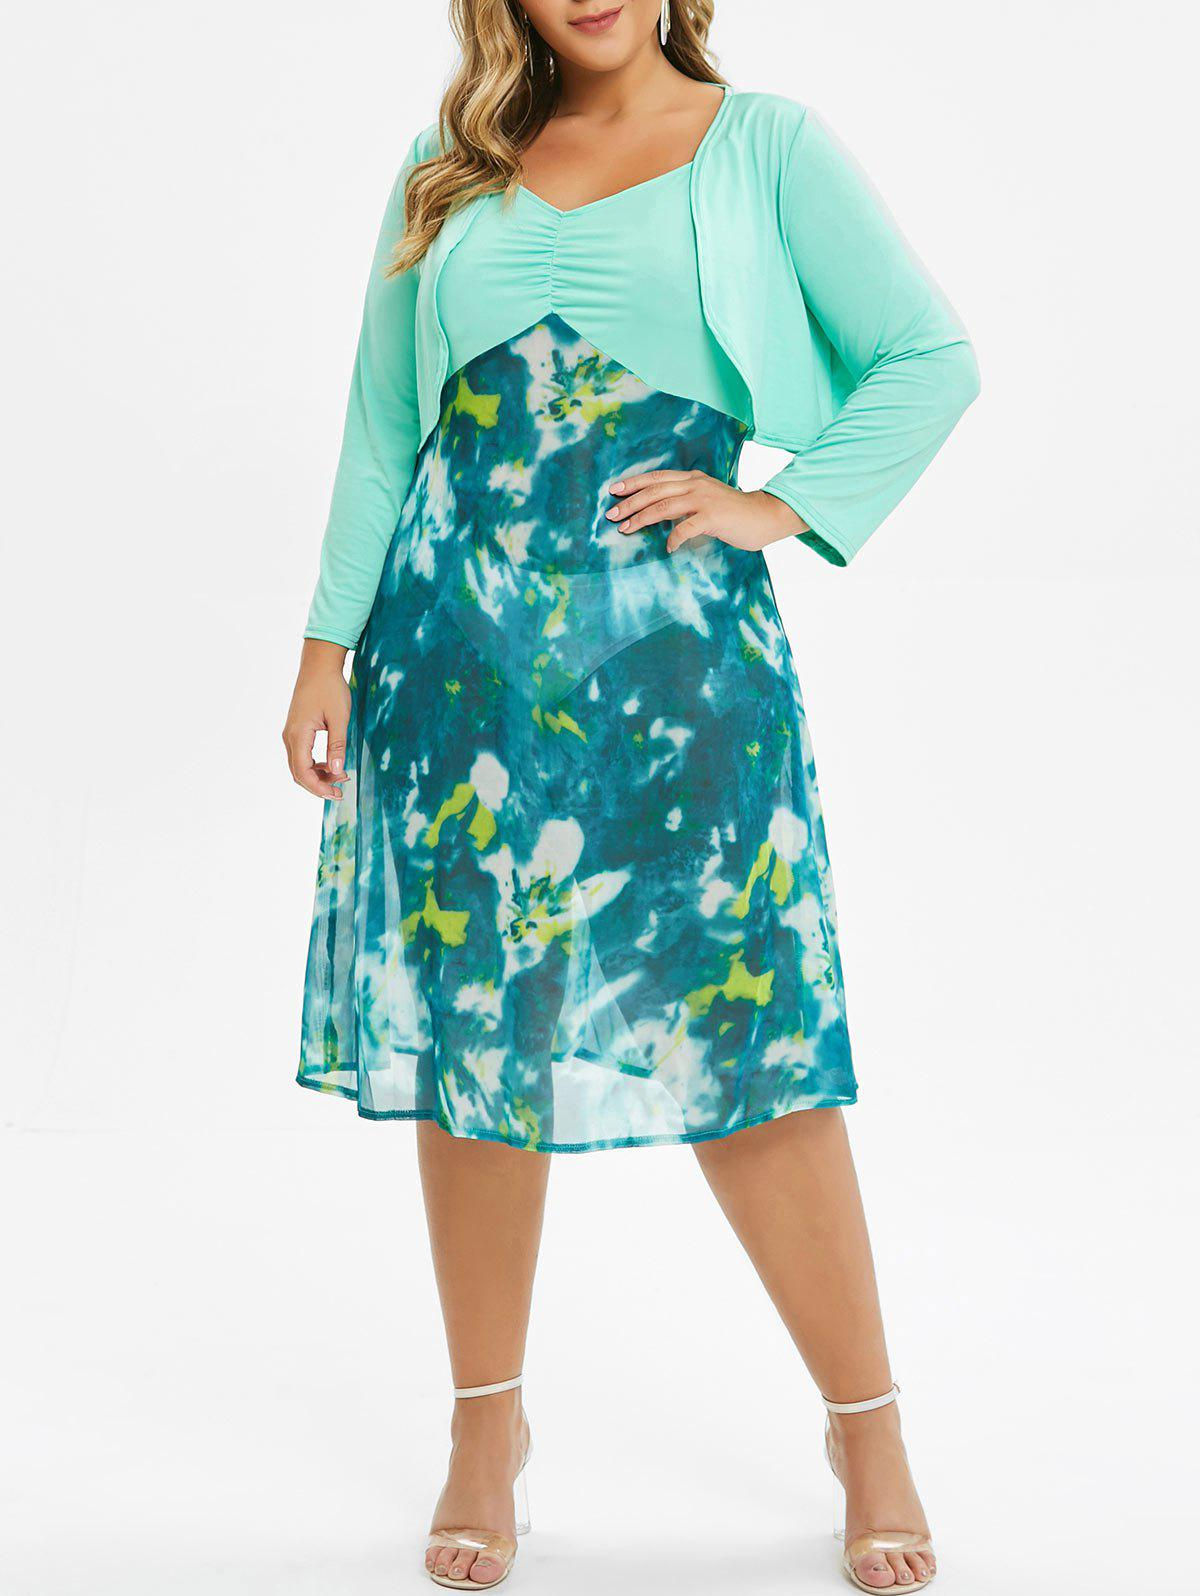 Plus Size Tie Dye Cami Dress With Top - LIGHT AQUAMARINE 1X